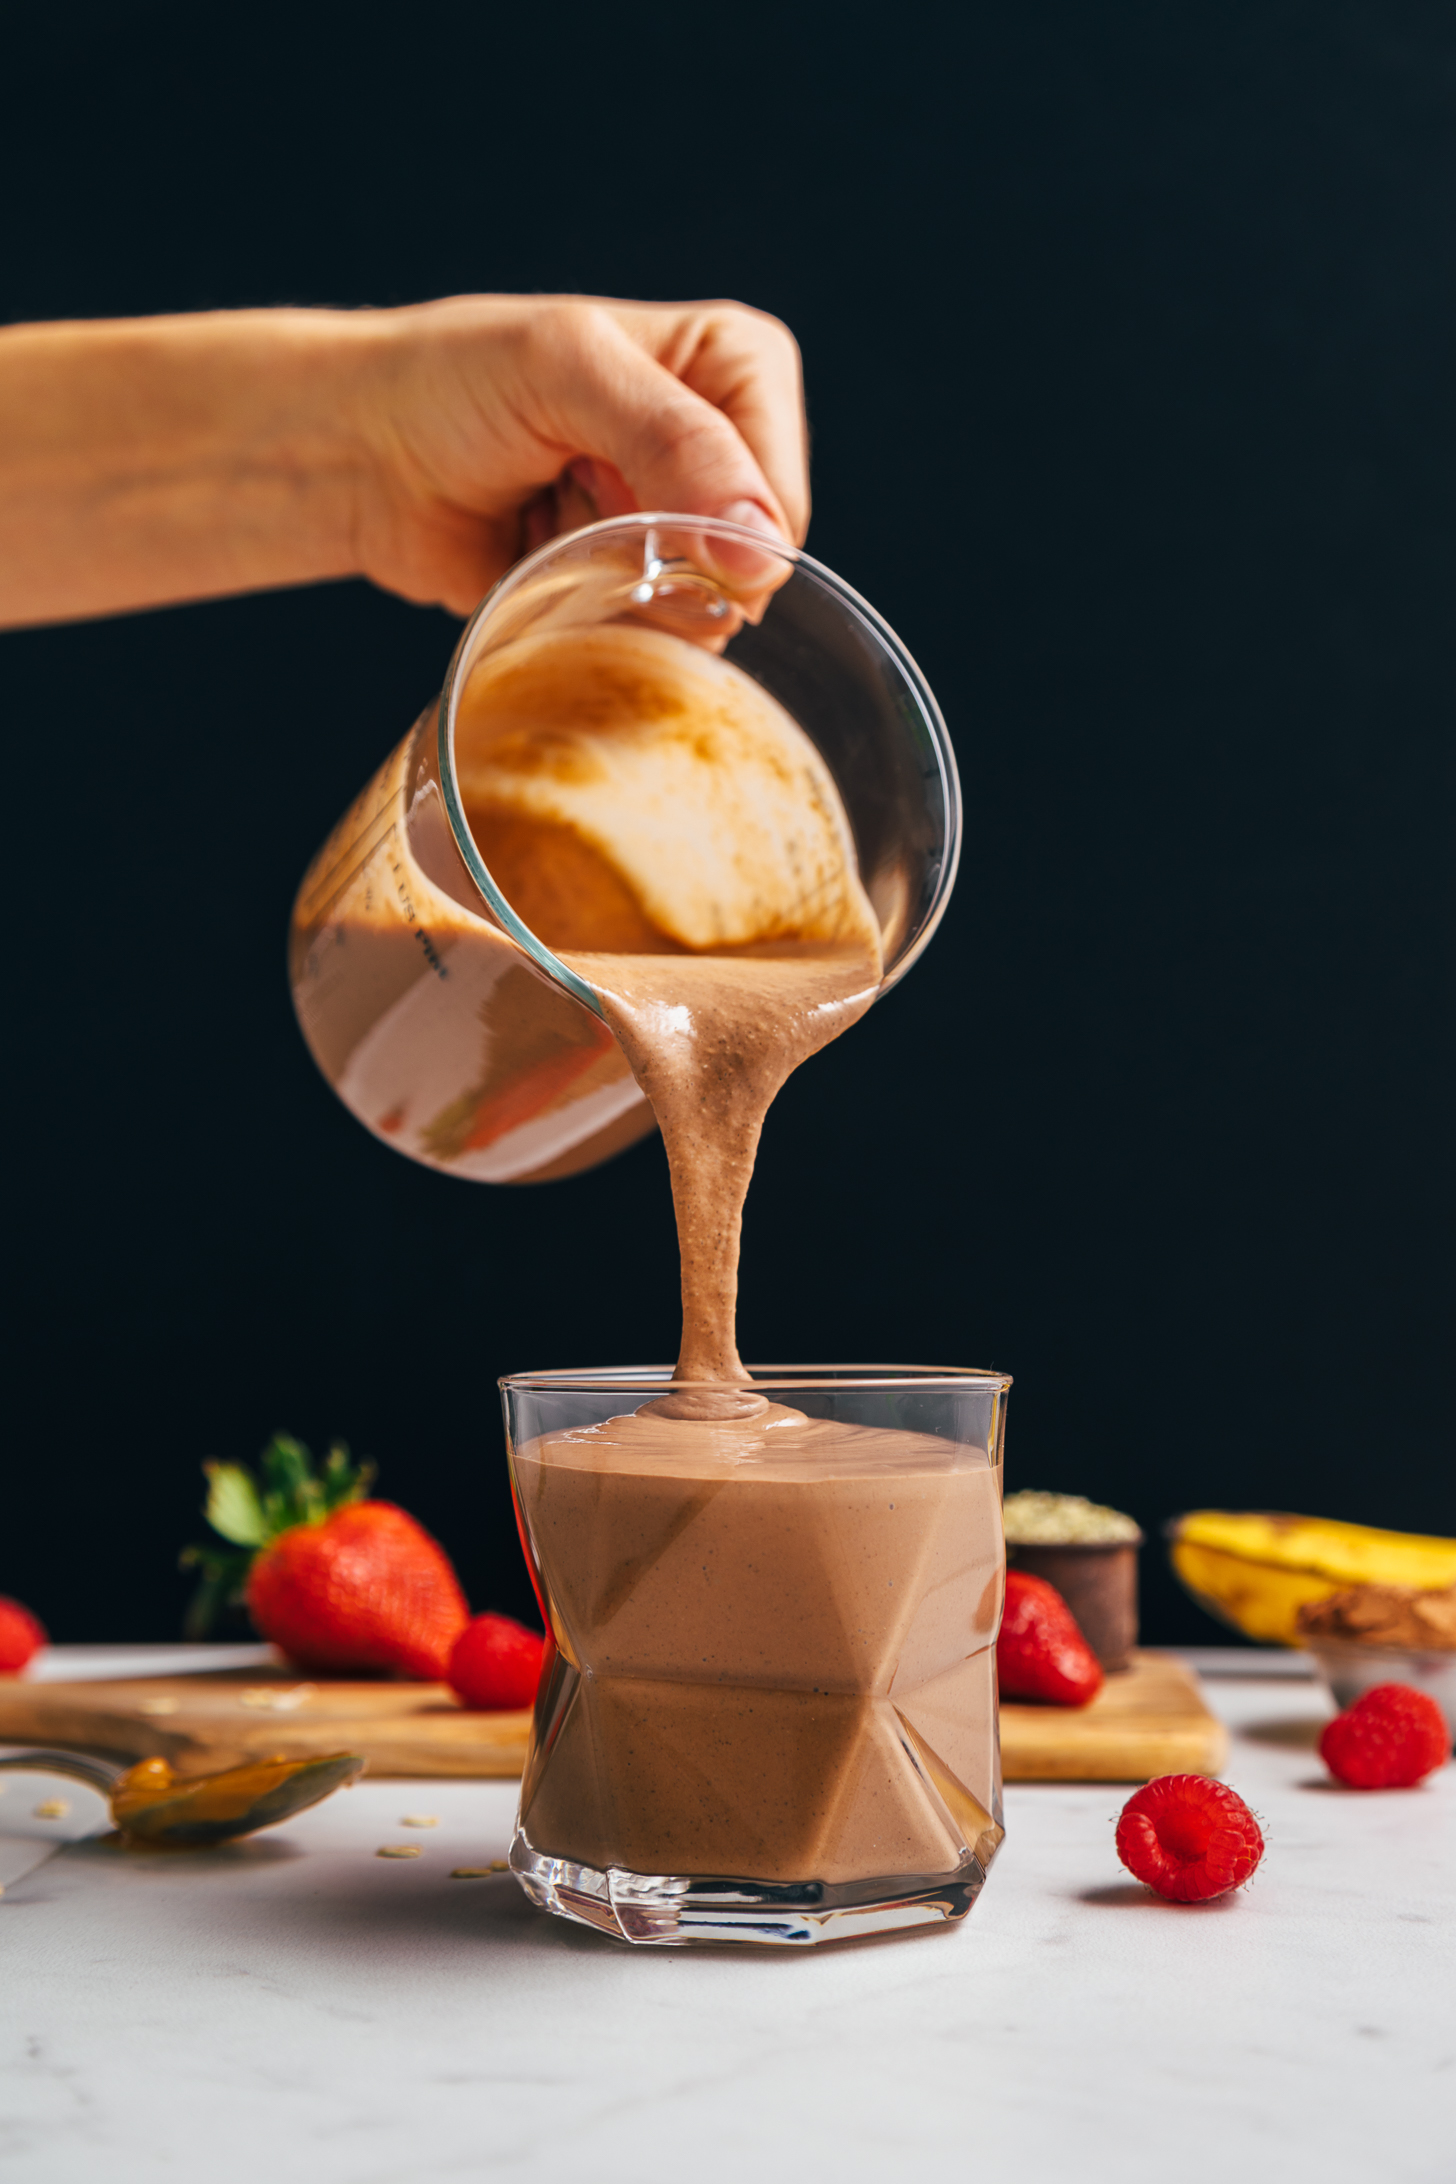 Pouring a serving of our Chocolate Protein Shake from a measuring glass